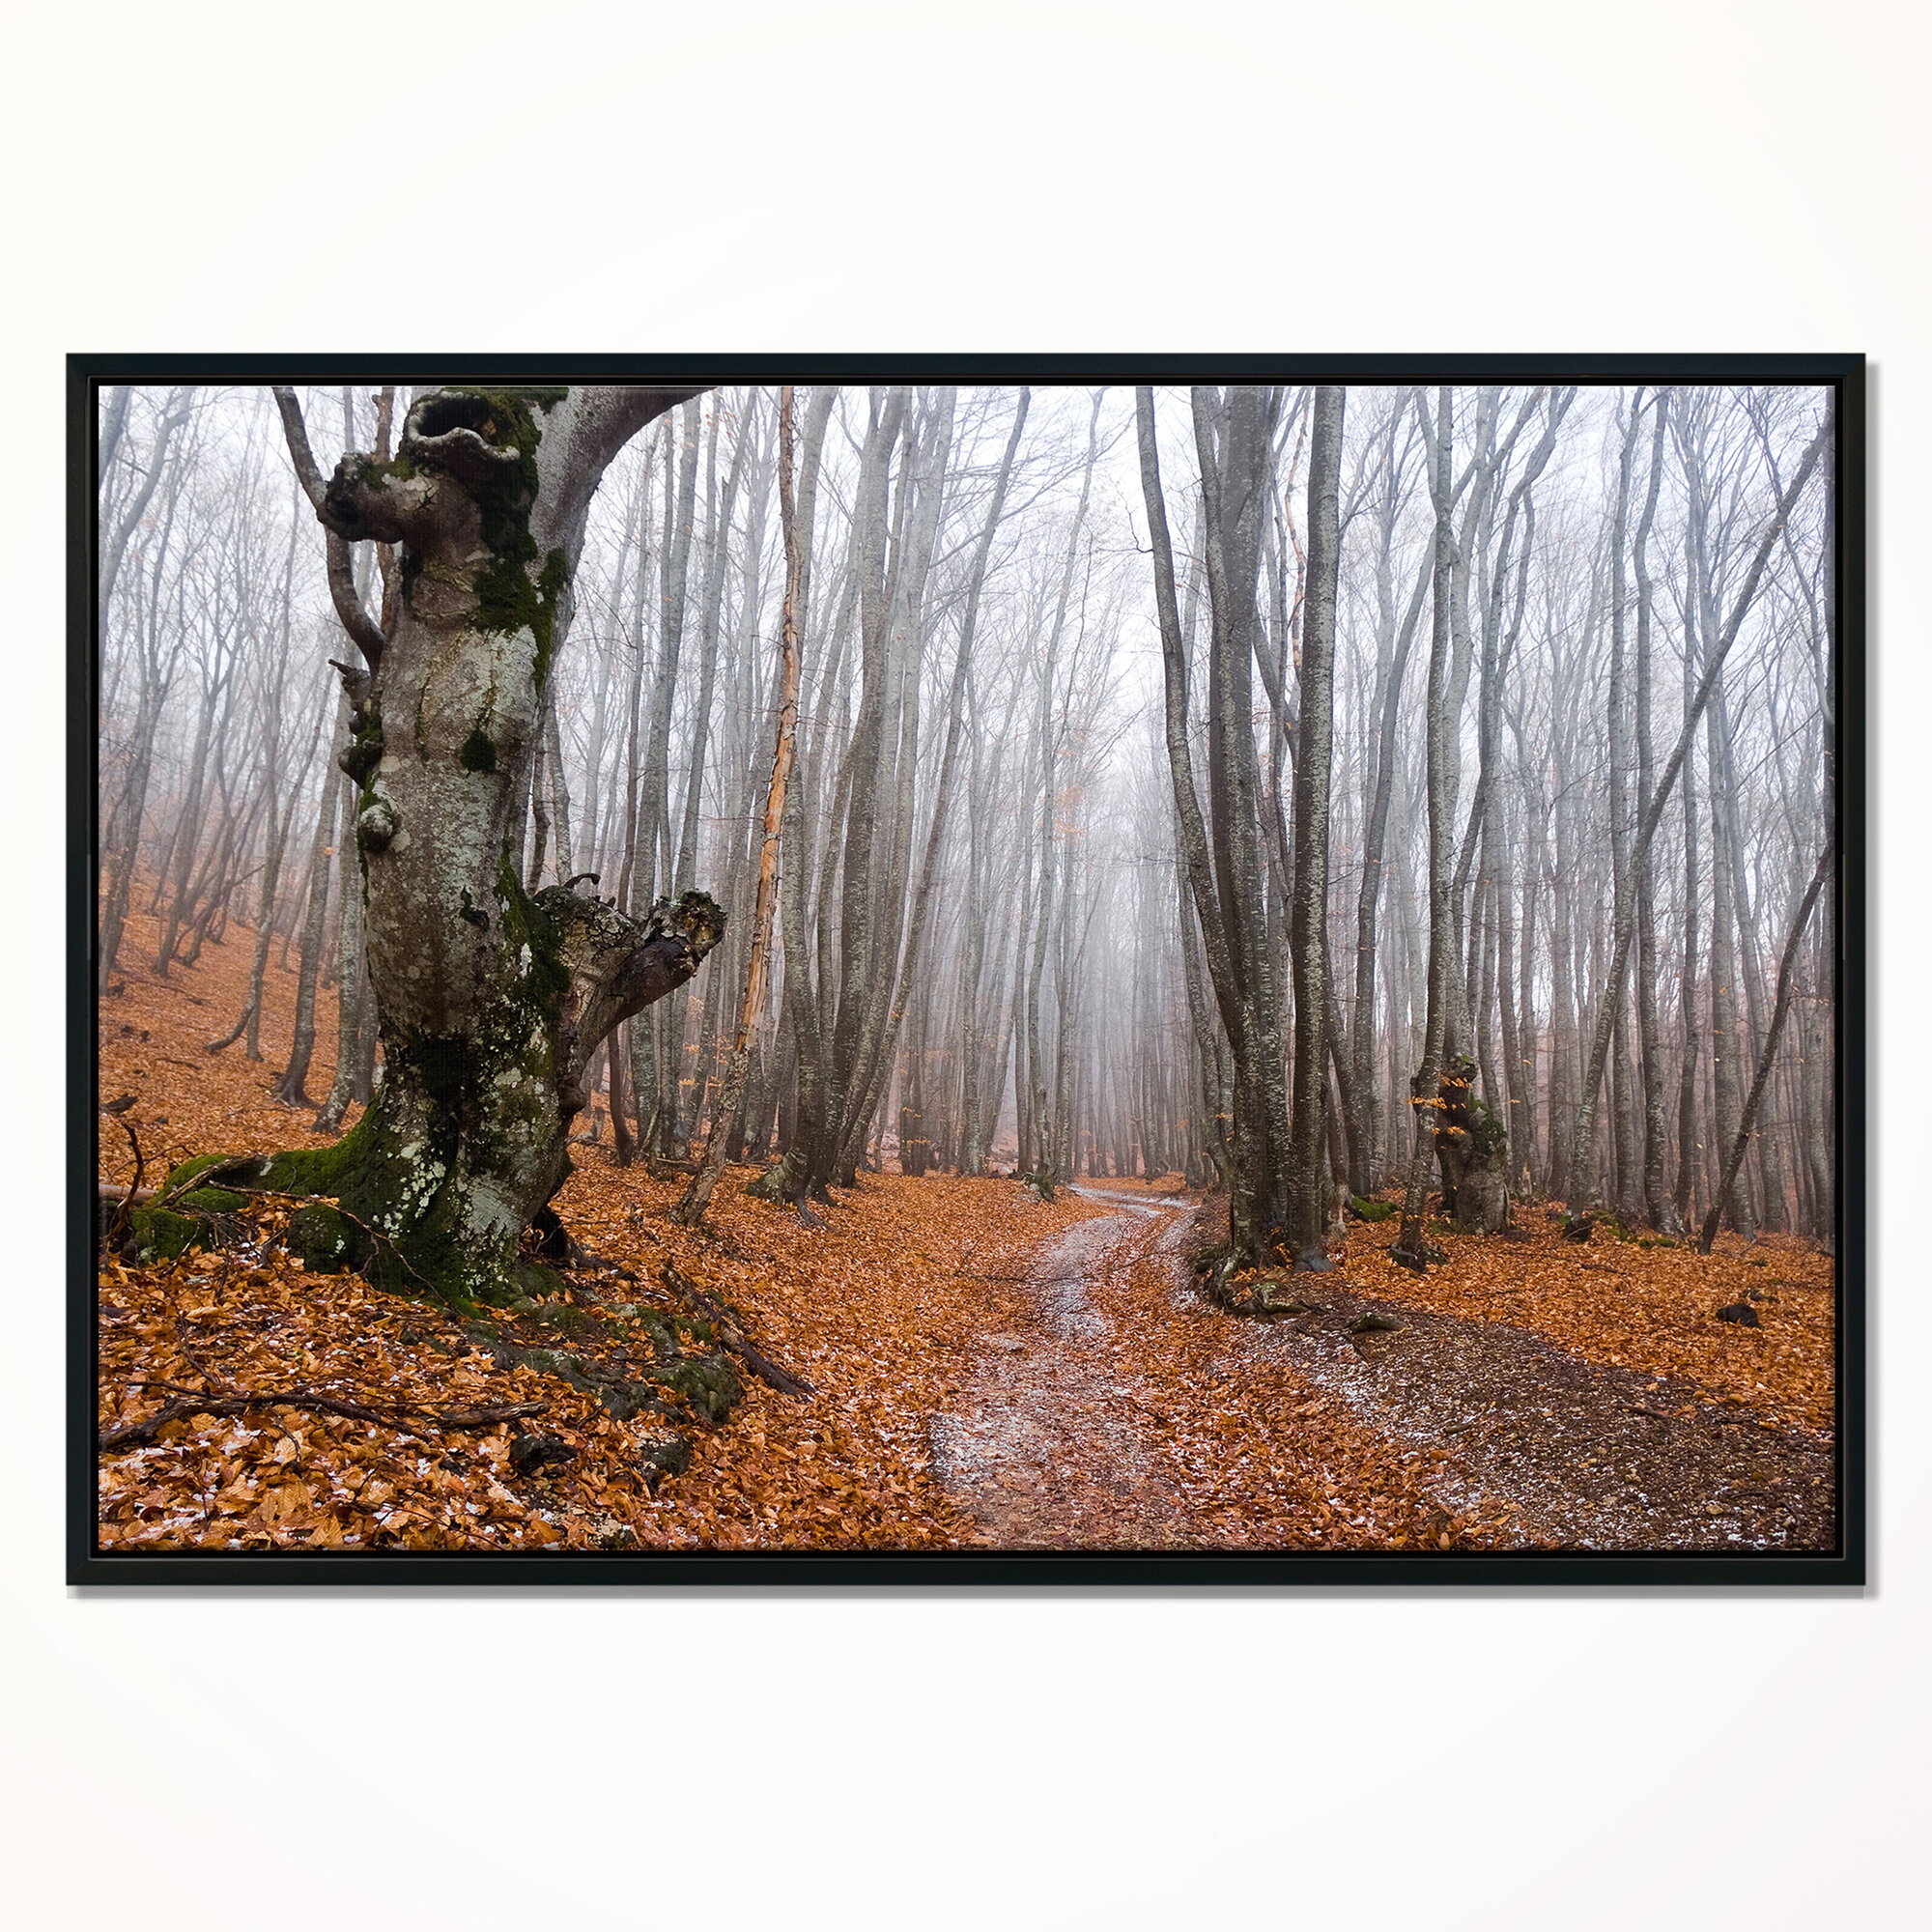 East Urban Home Road Covered By Fallen Leaves Framed Photographic Print On Wrapped Canvas Wayfair